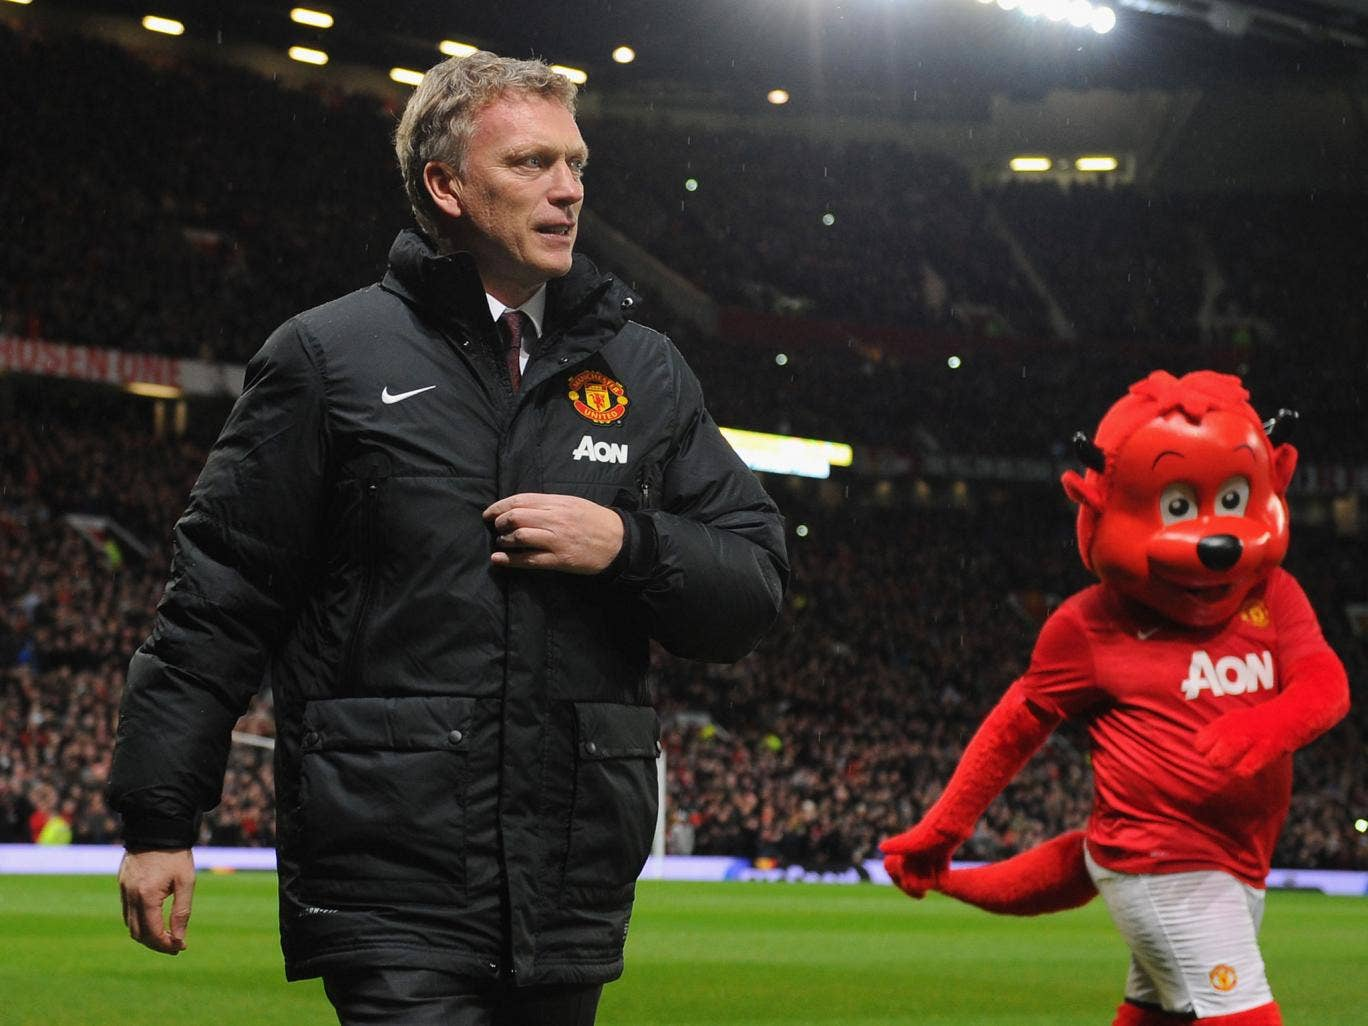 Manchester United manager David Moyes ahead of the Premier League clash with Tottenham